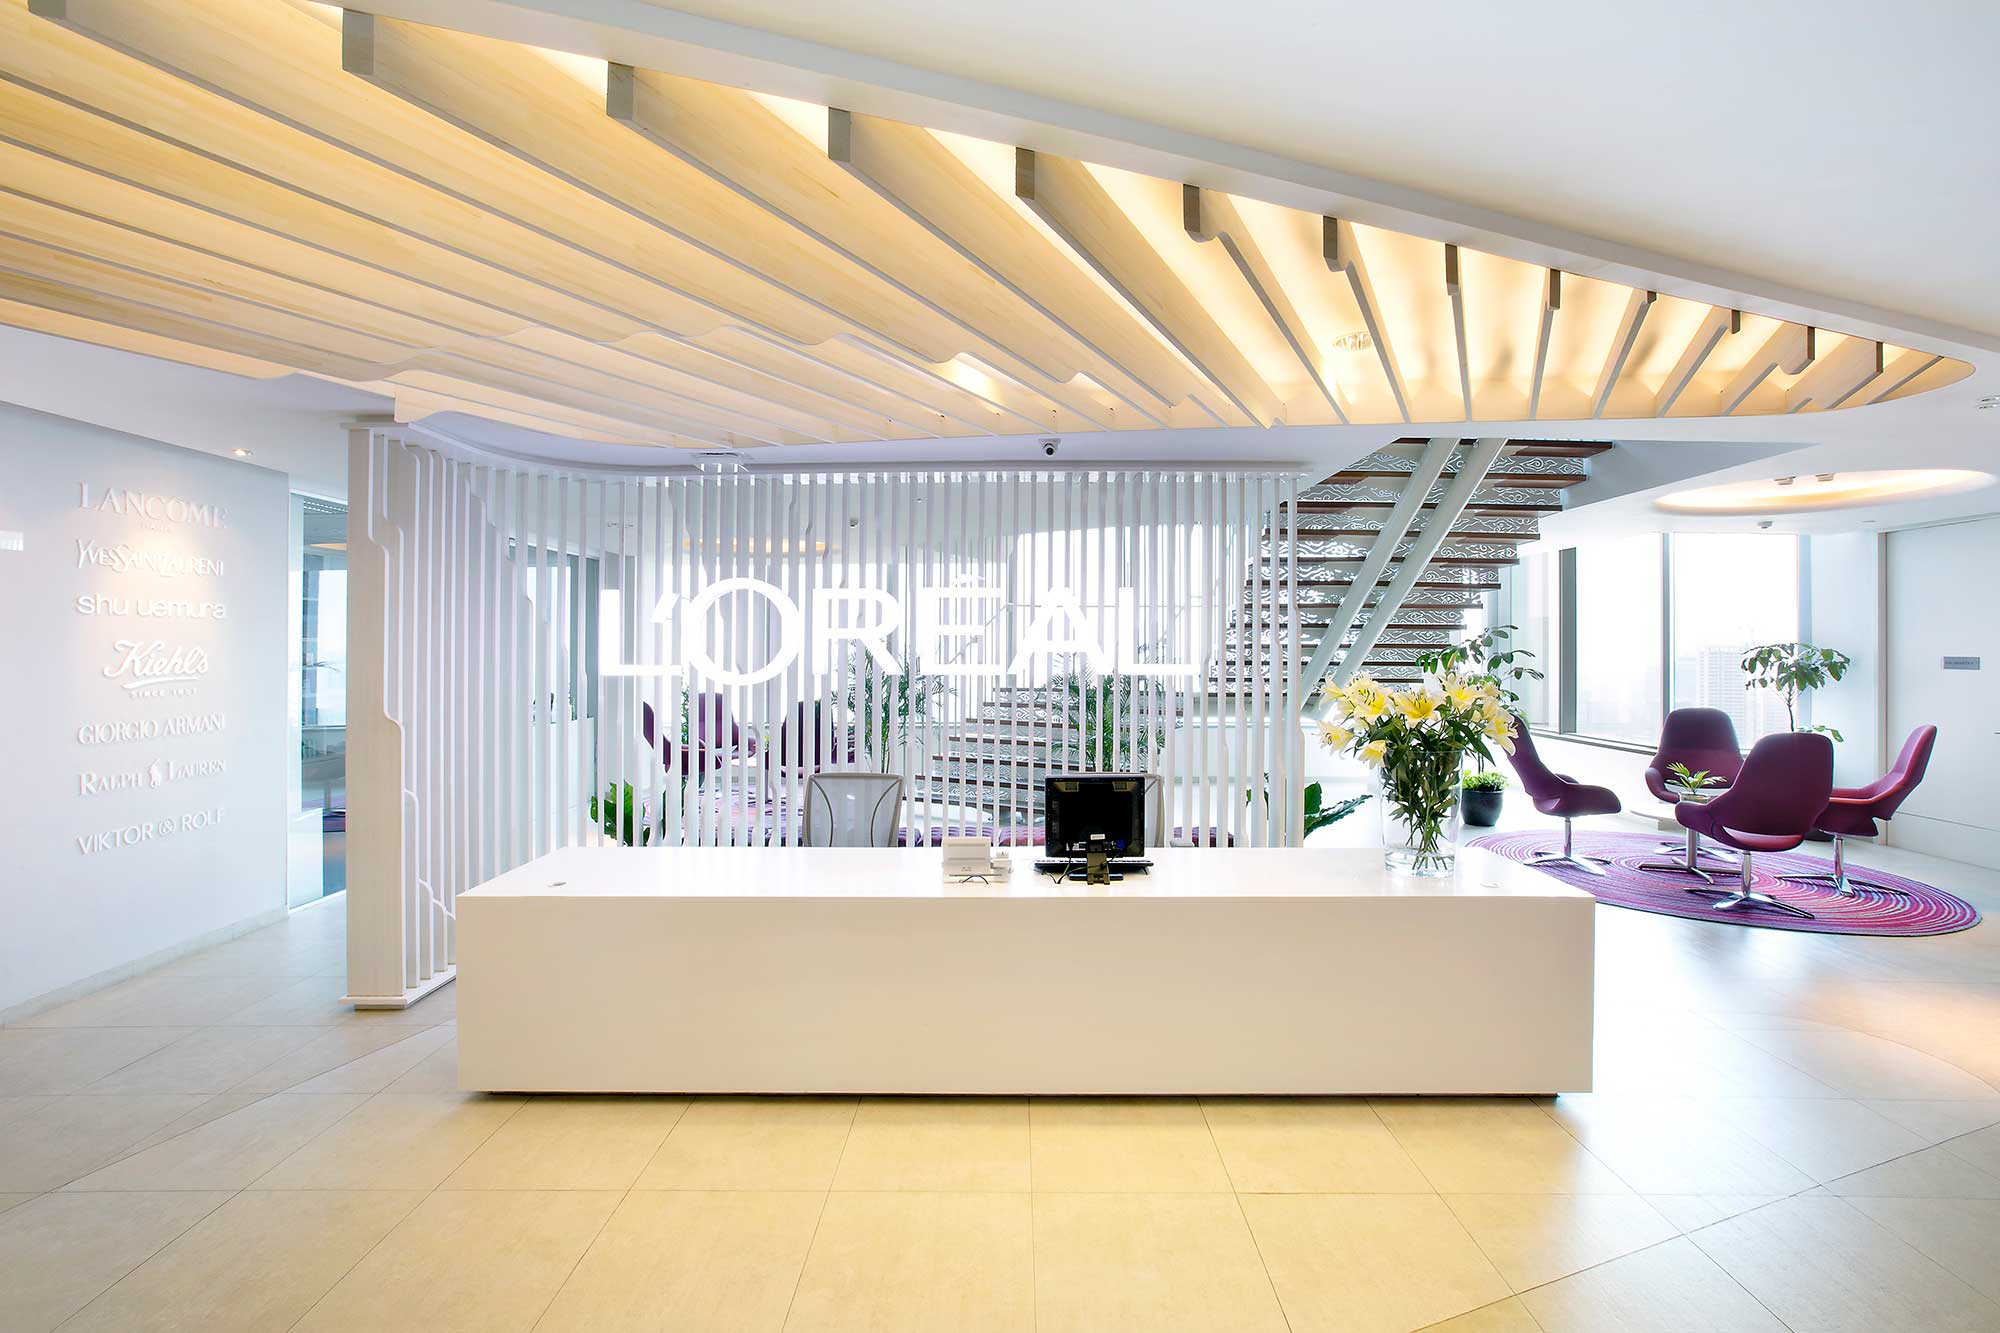 The reception of L'Oreal's new office in Jakarta. Interior Design + Build by AVIP